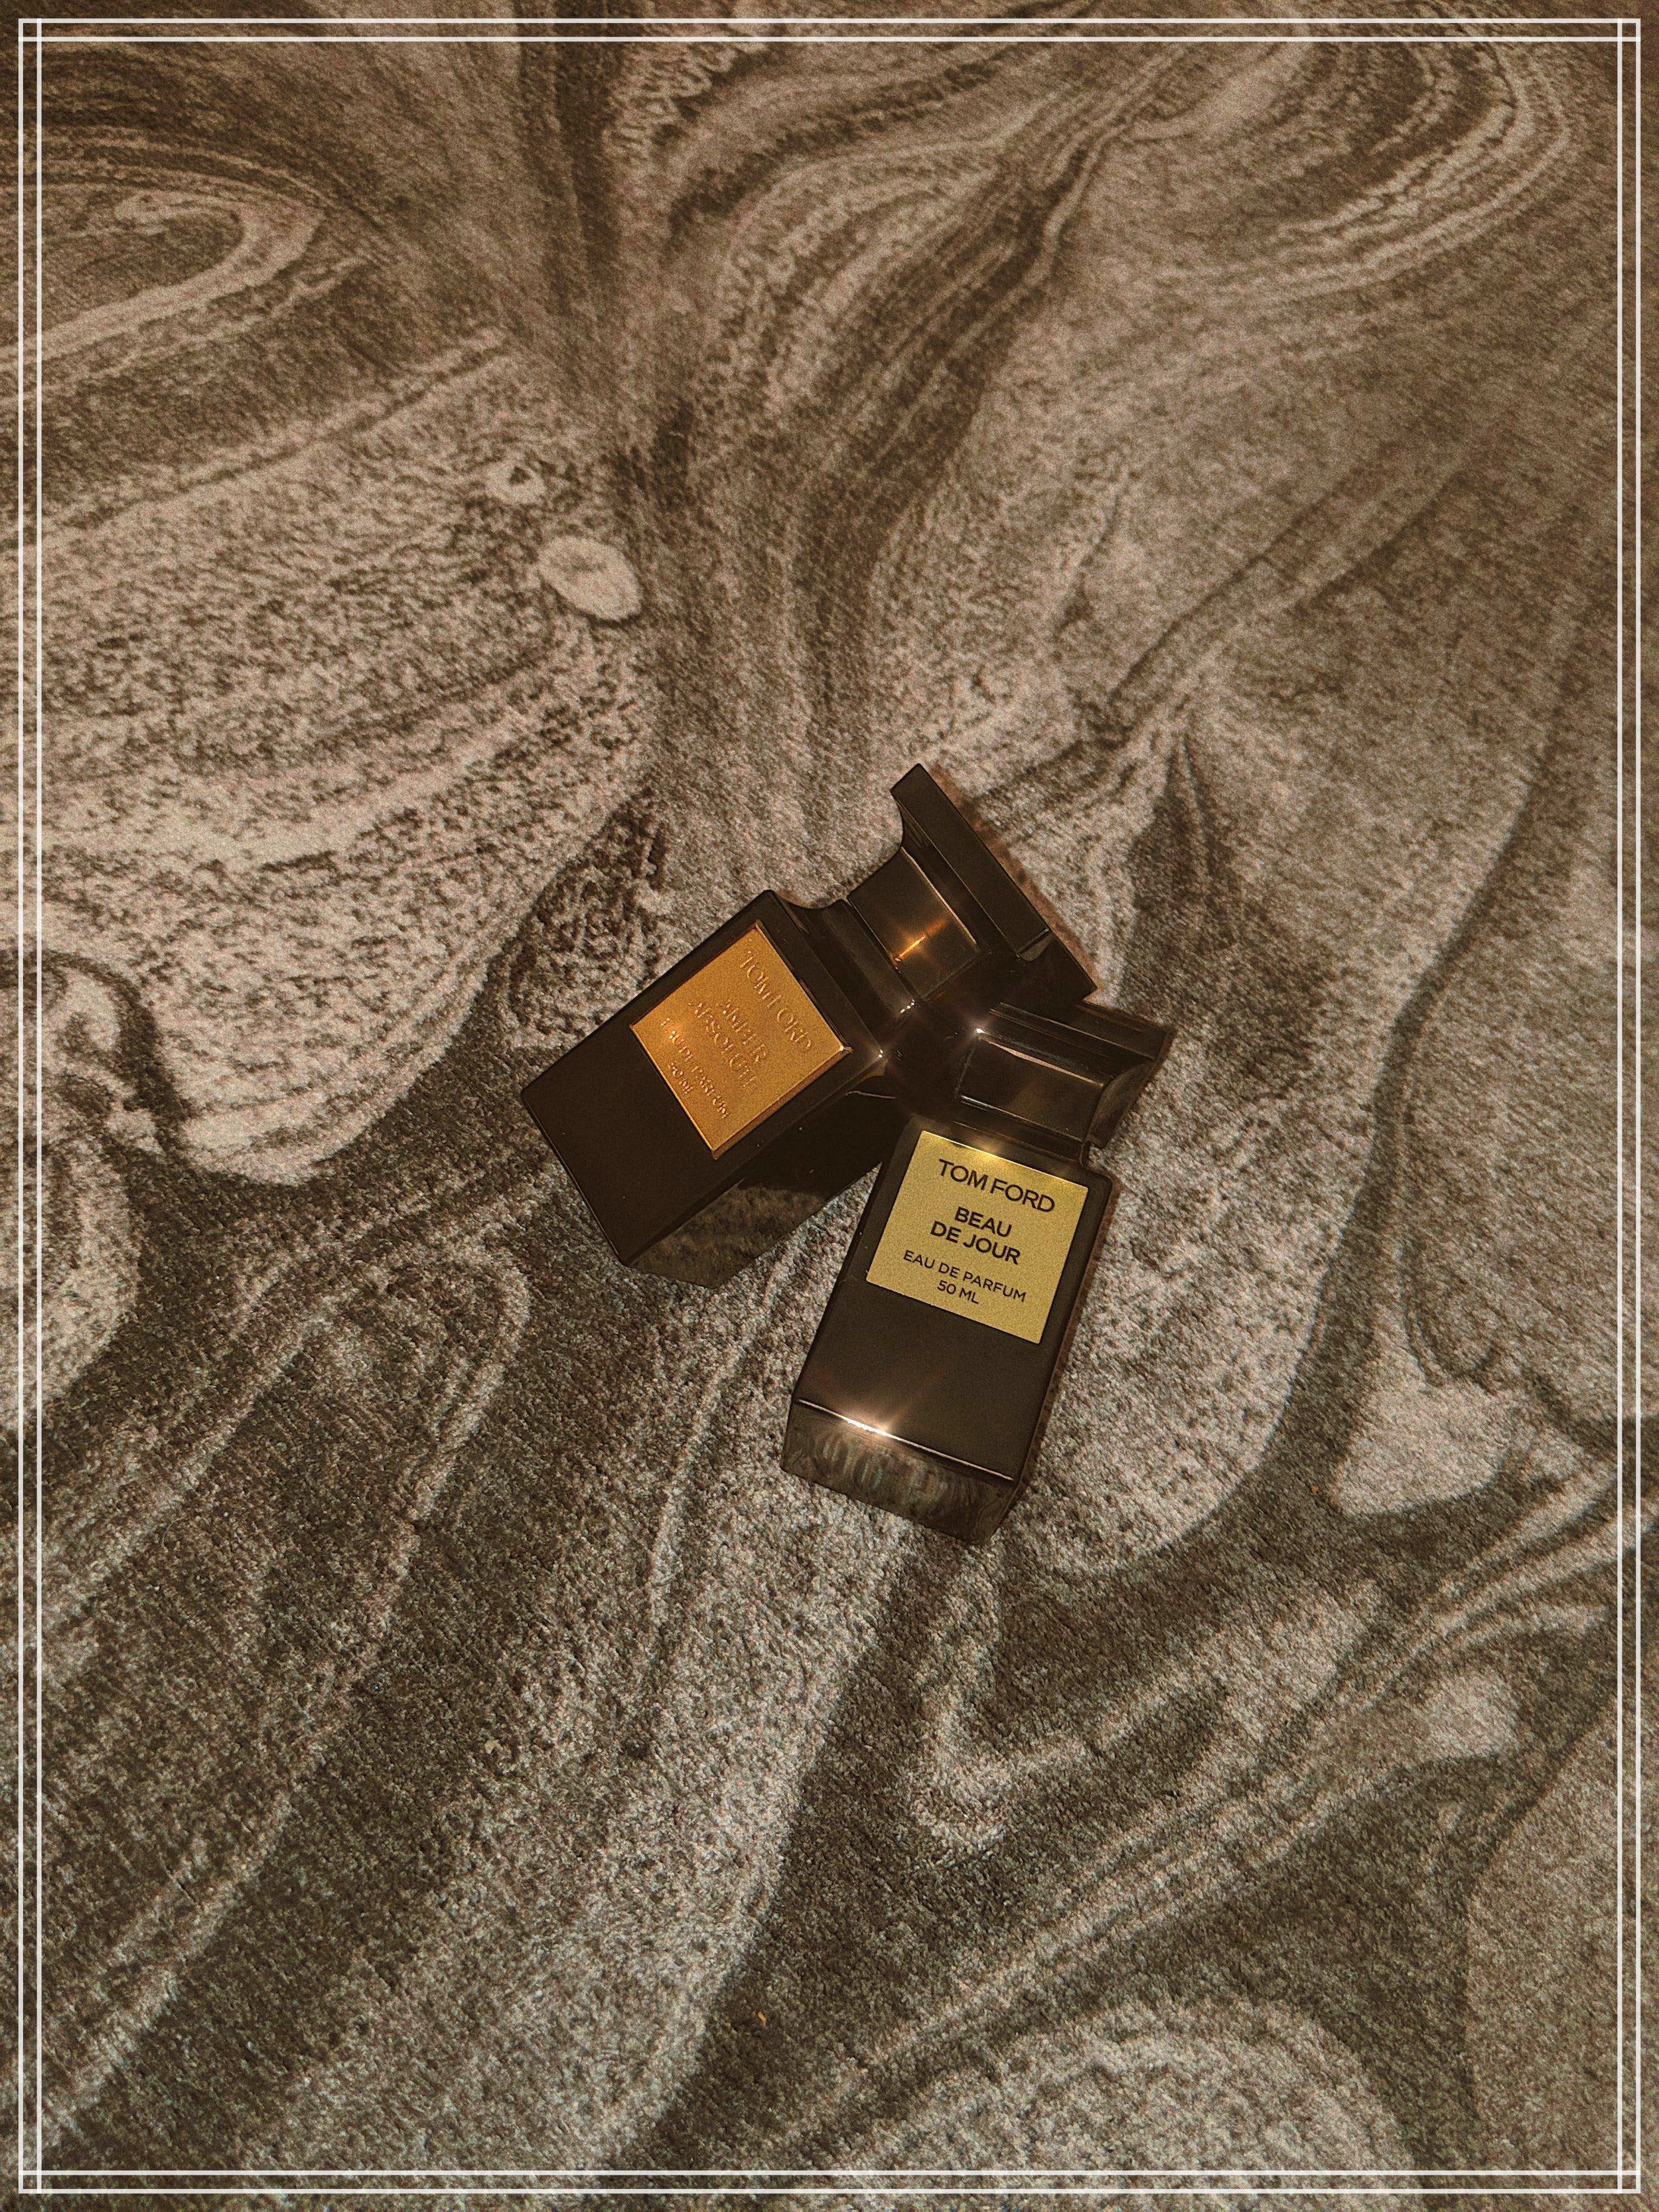 mybelonging-tom-ford-fragrance-cologne-giveaway2.JPG